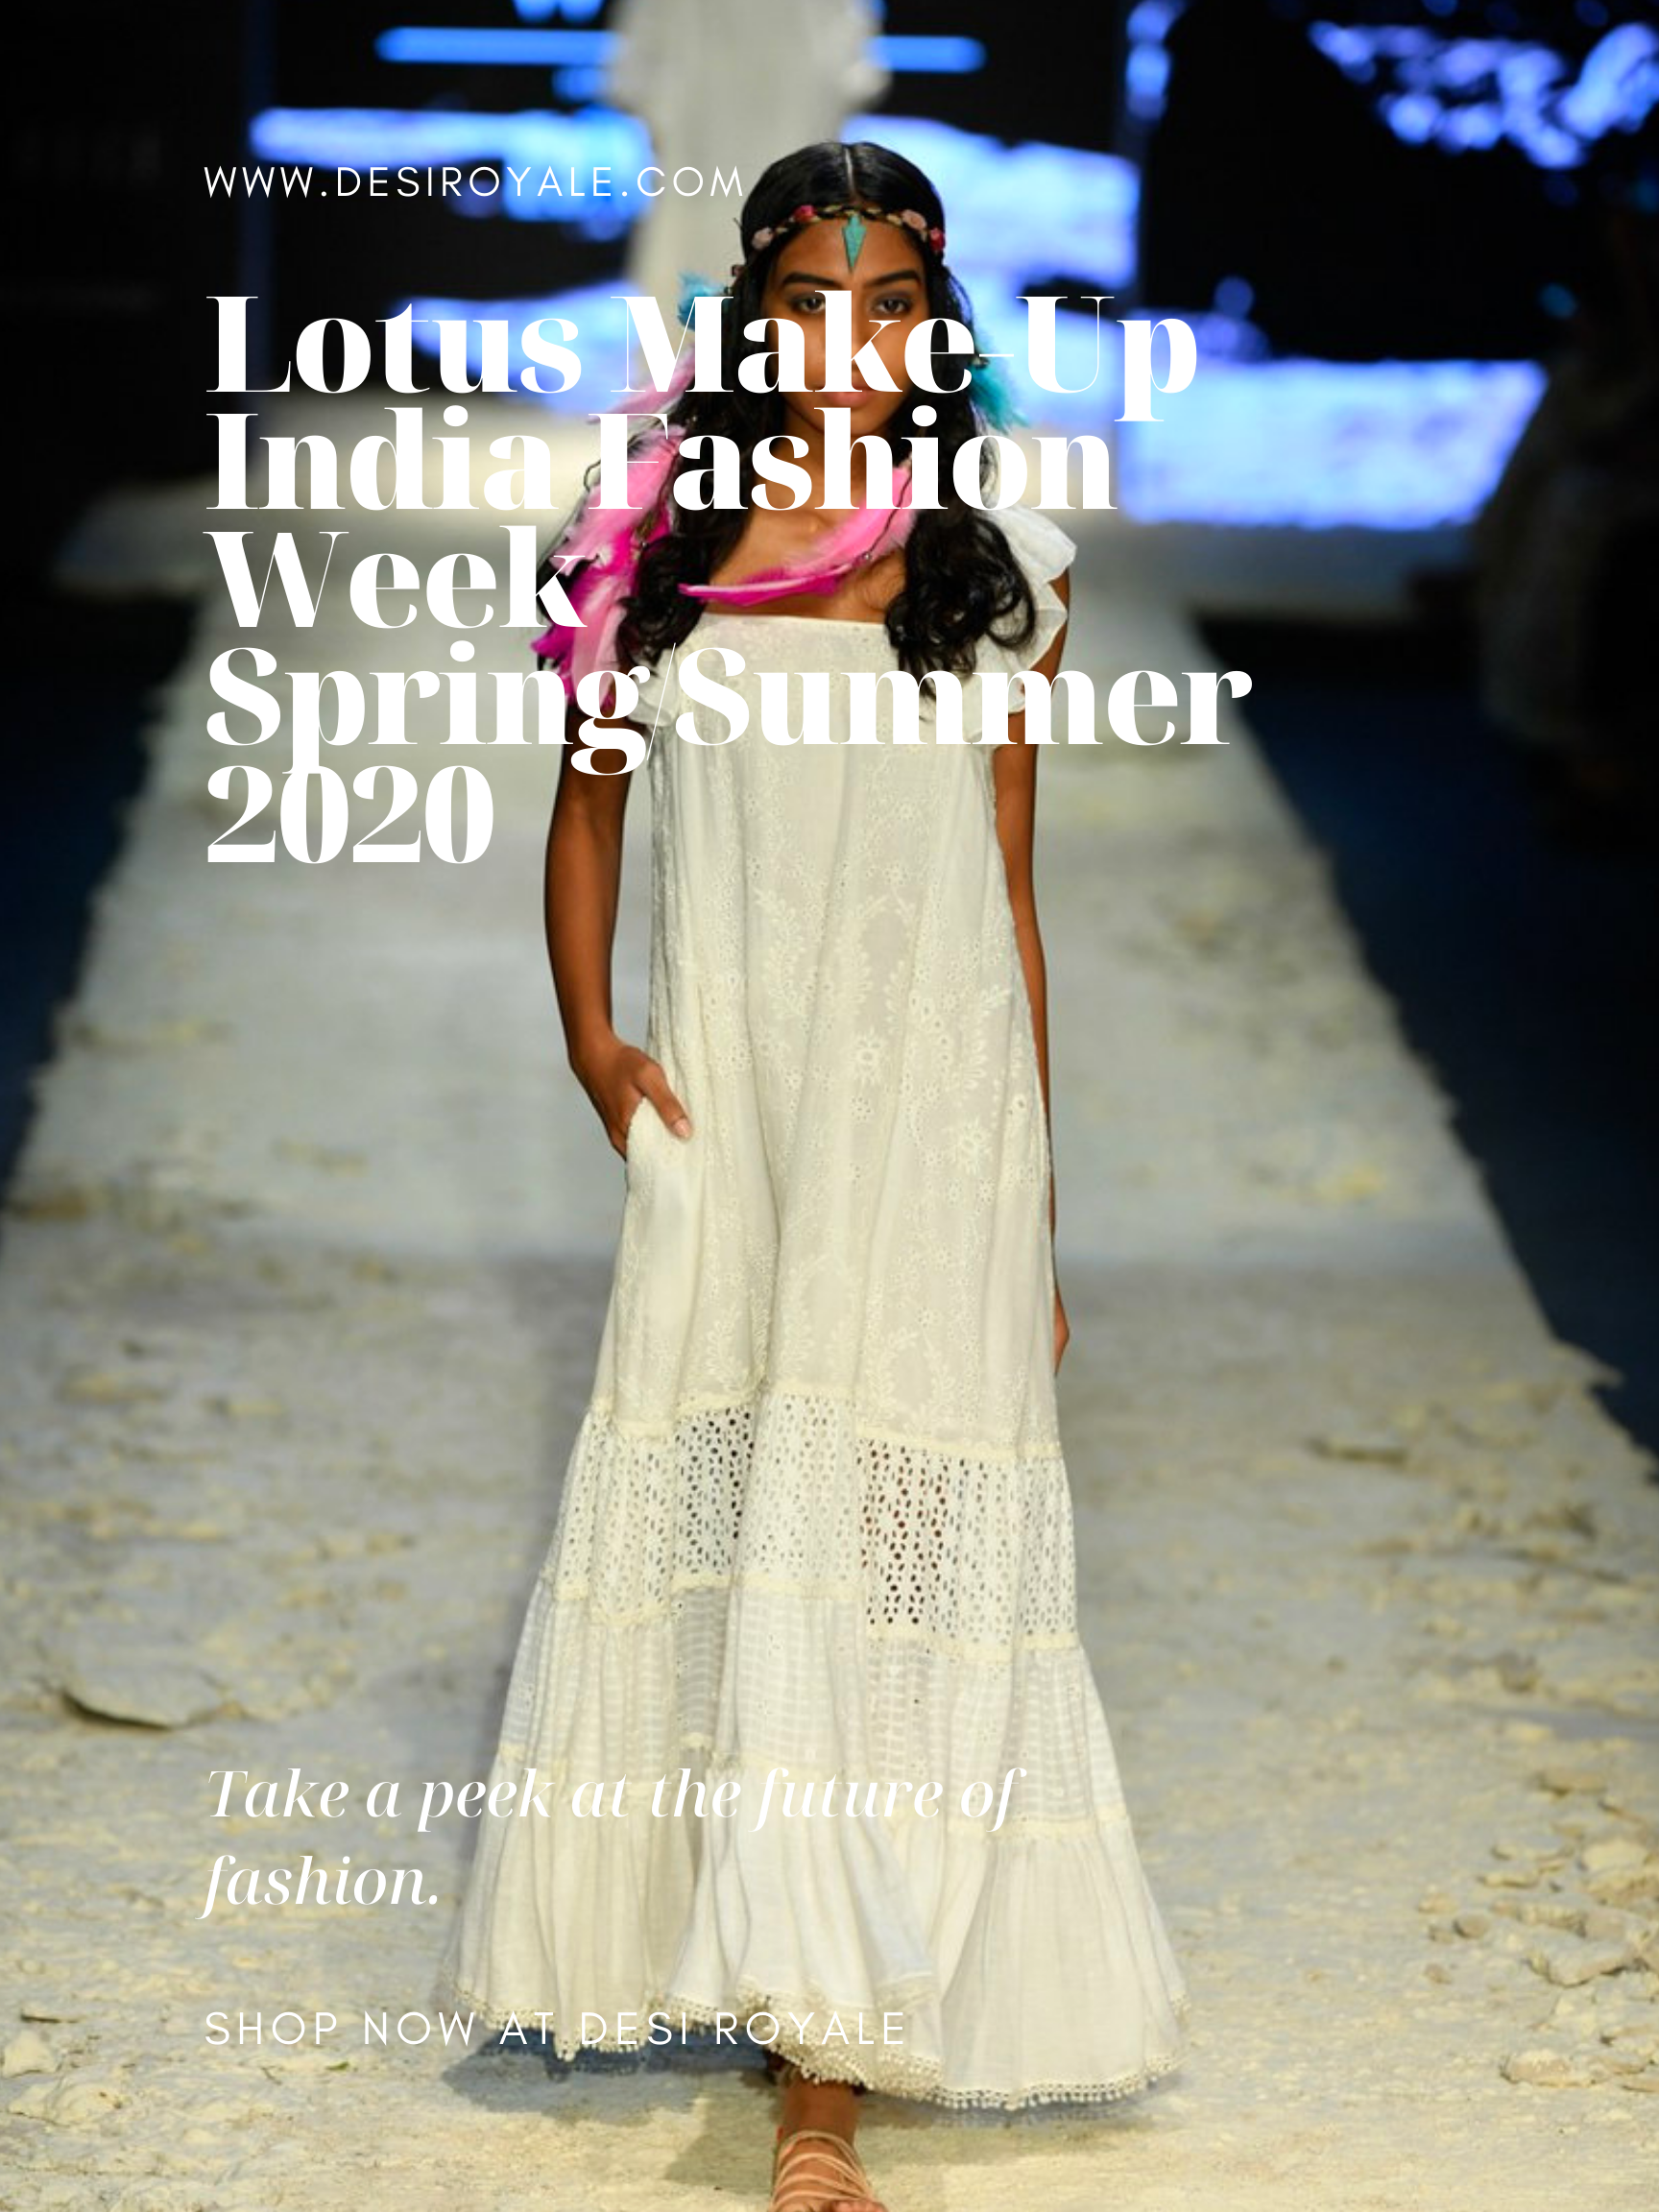 Lotus Make-Up India Fashion Week spring/summer 2020 - Payal Jain